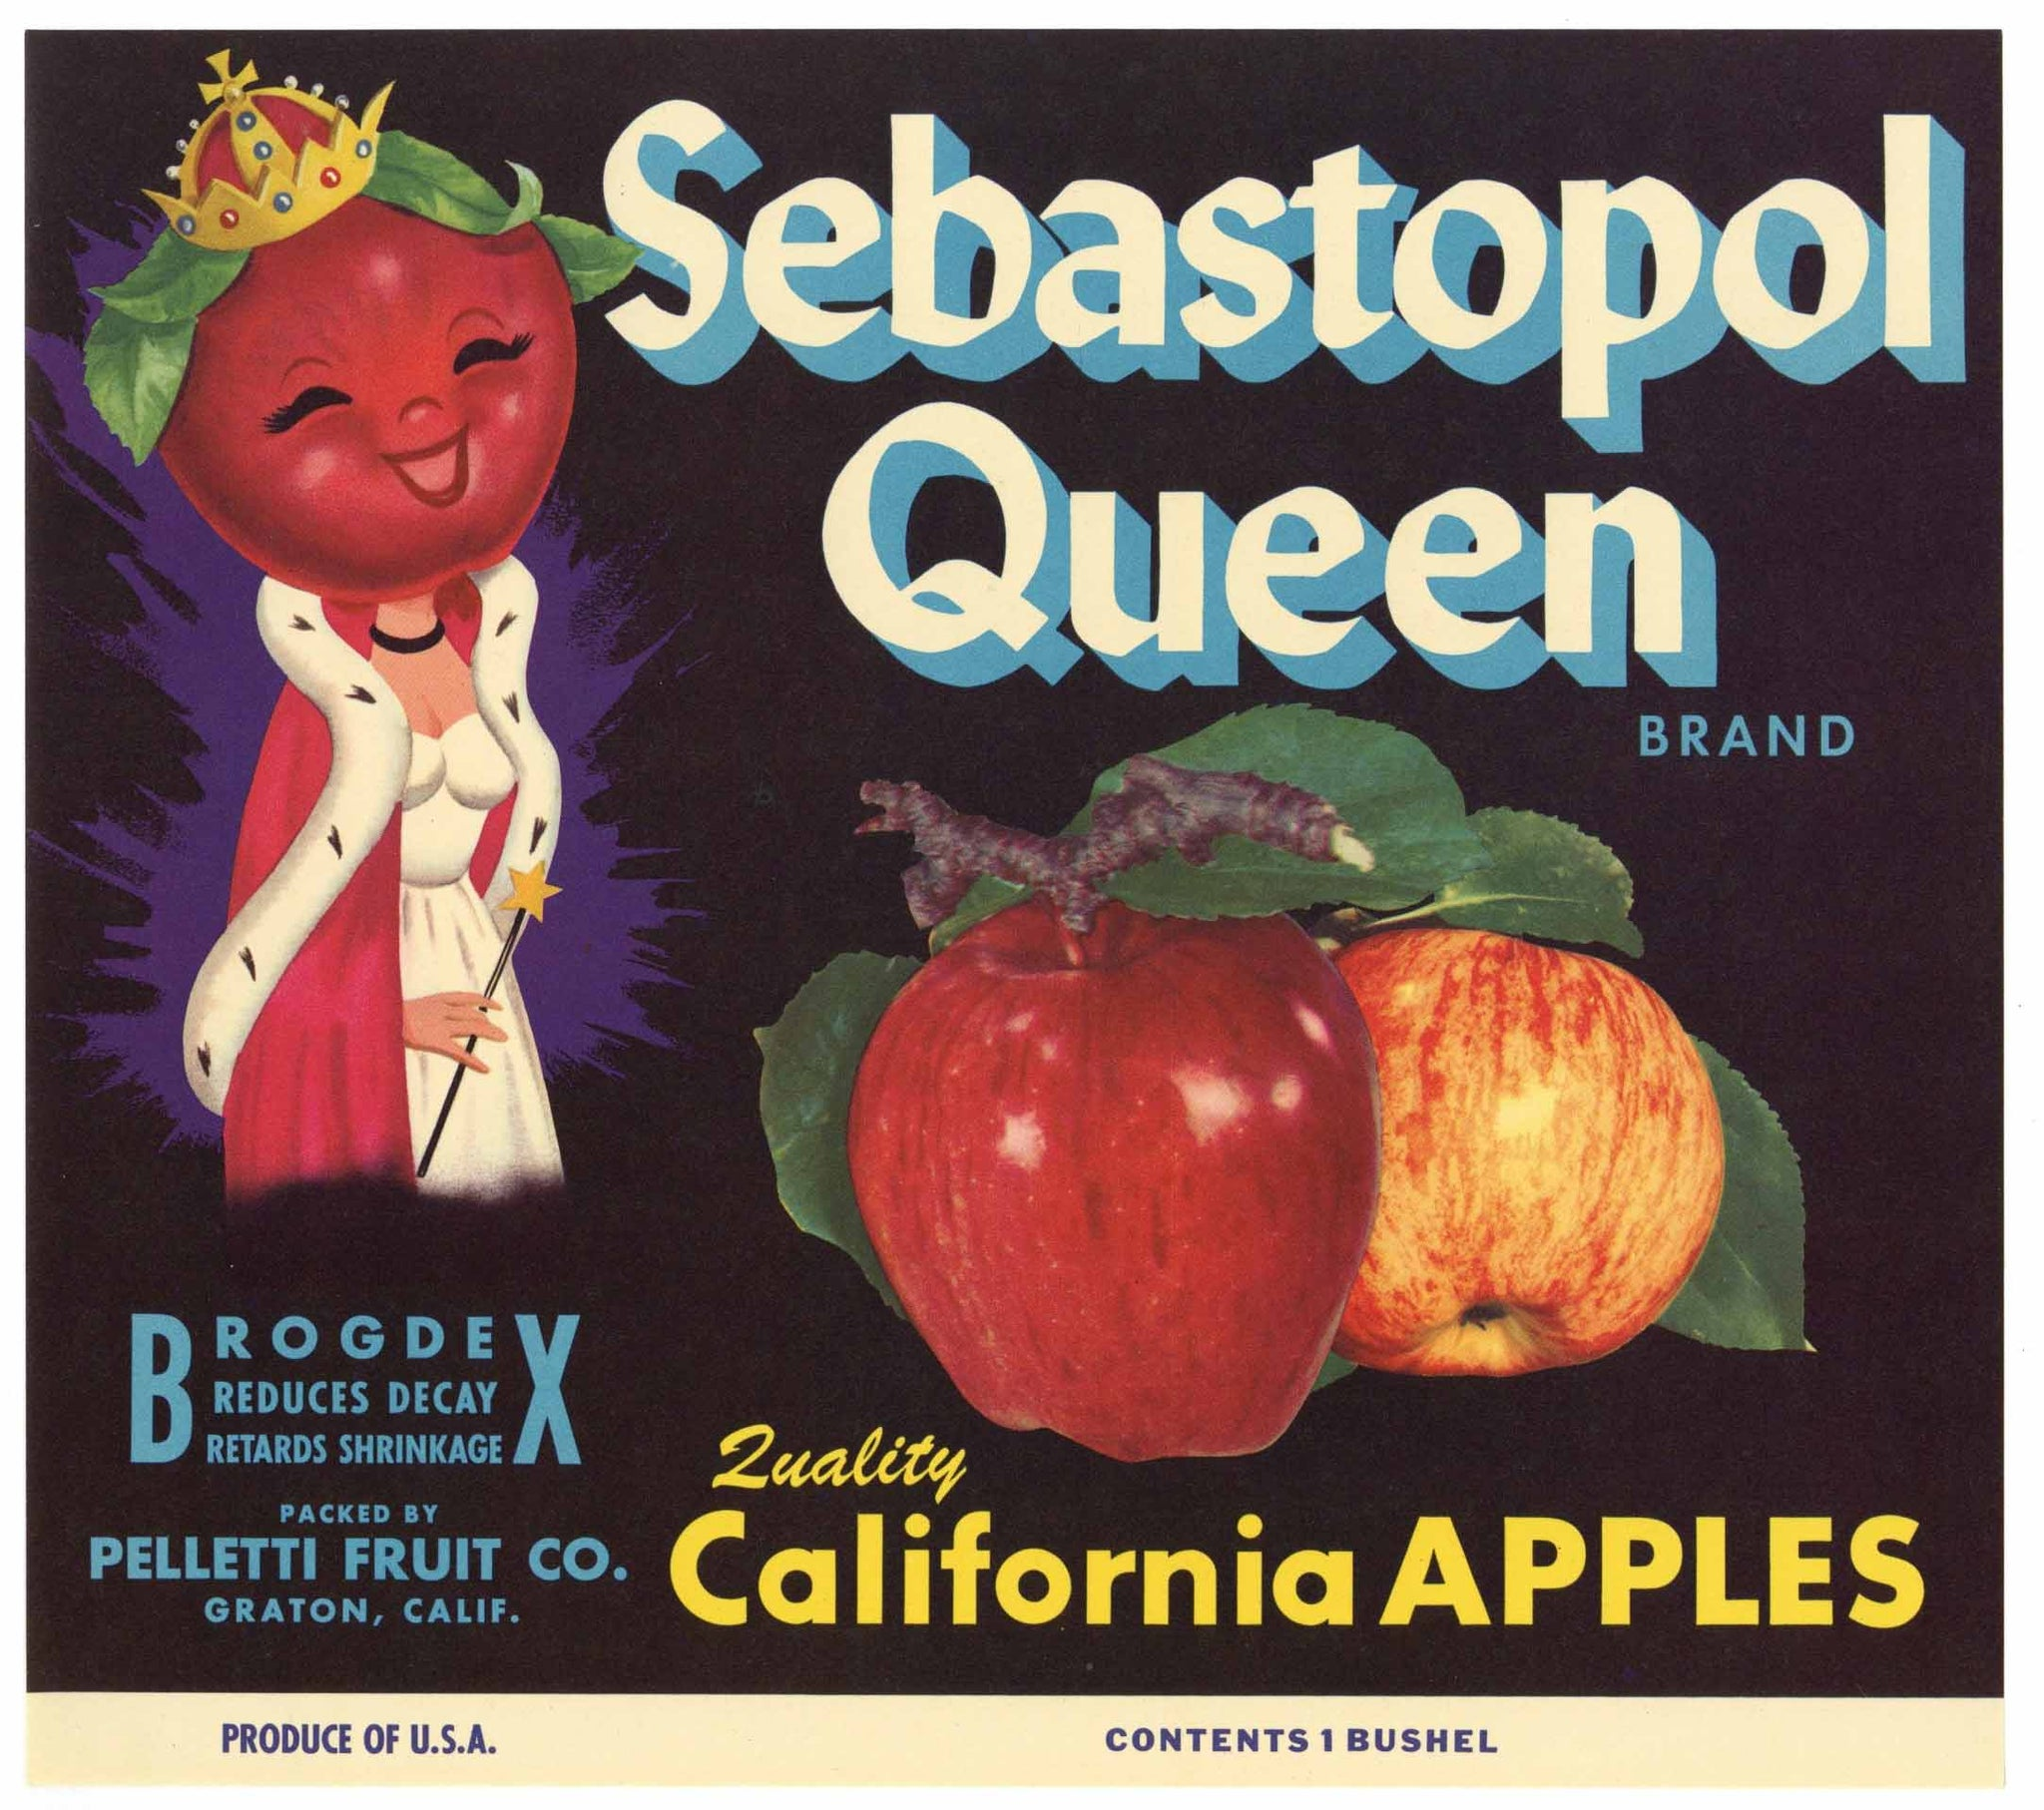 Sebastopol Queen Brand Vintage Apple Crate Label